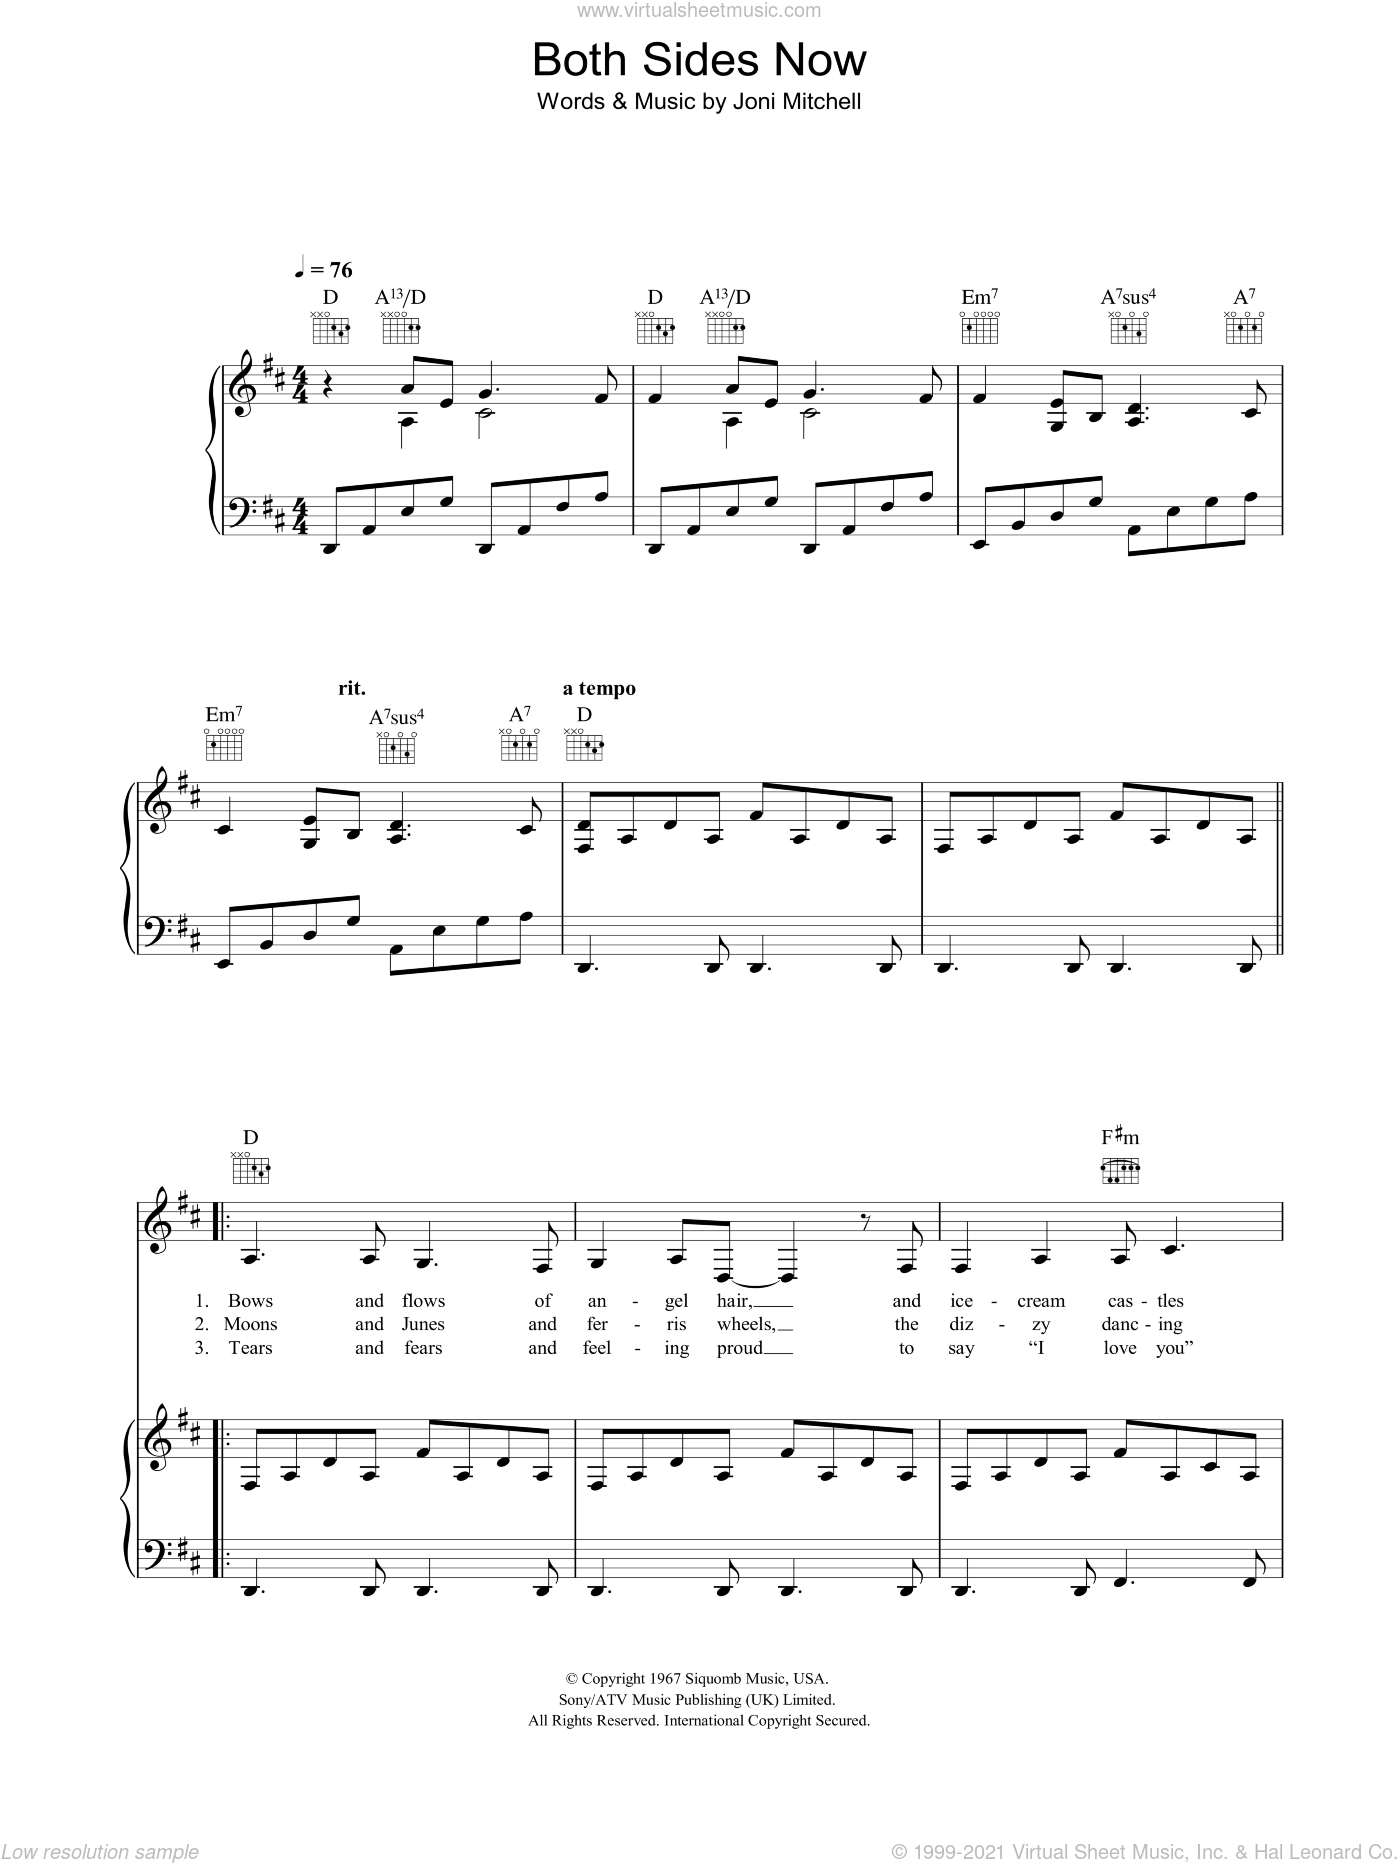 Both Sides Now sheet music for voice, piano or guitar by Joni Mitchell, intermediate skill level